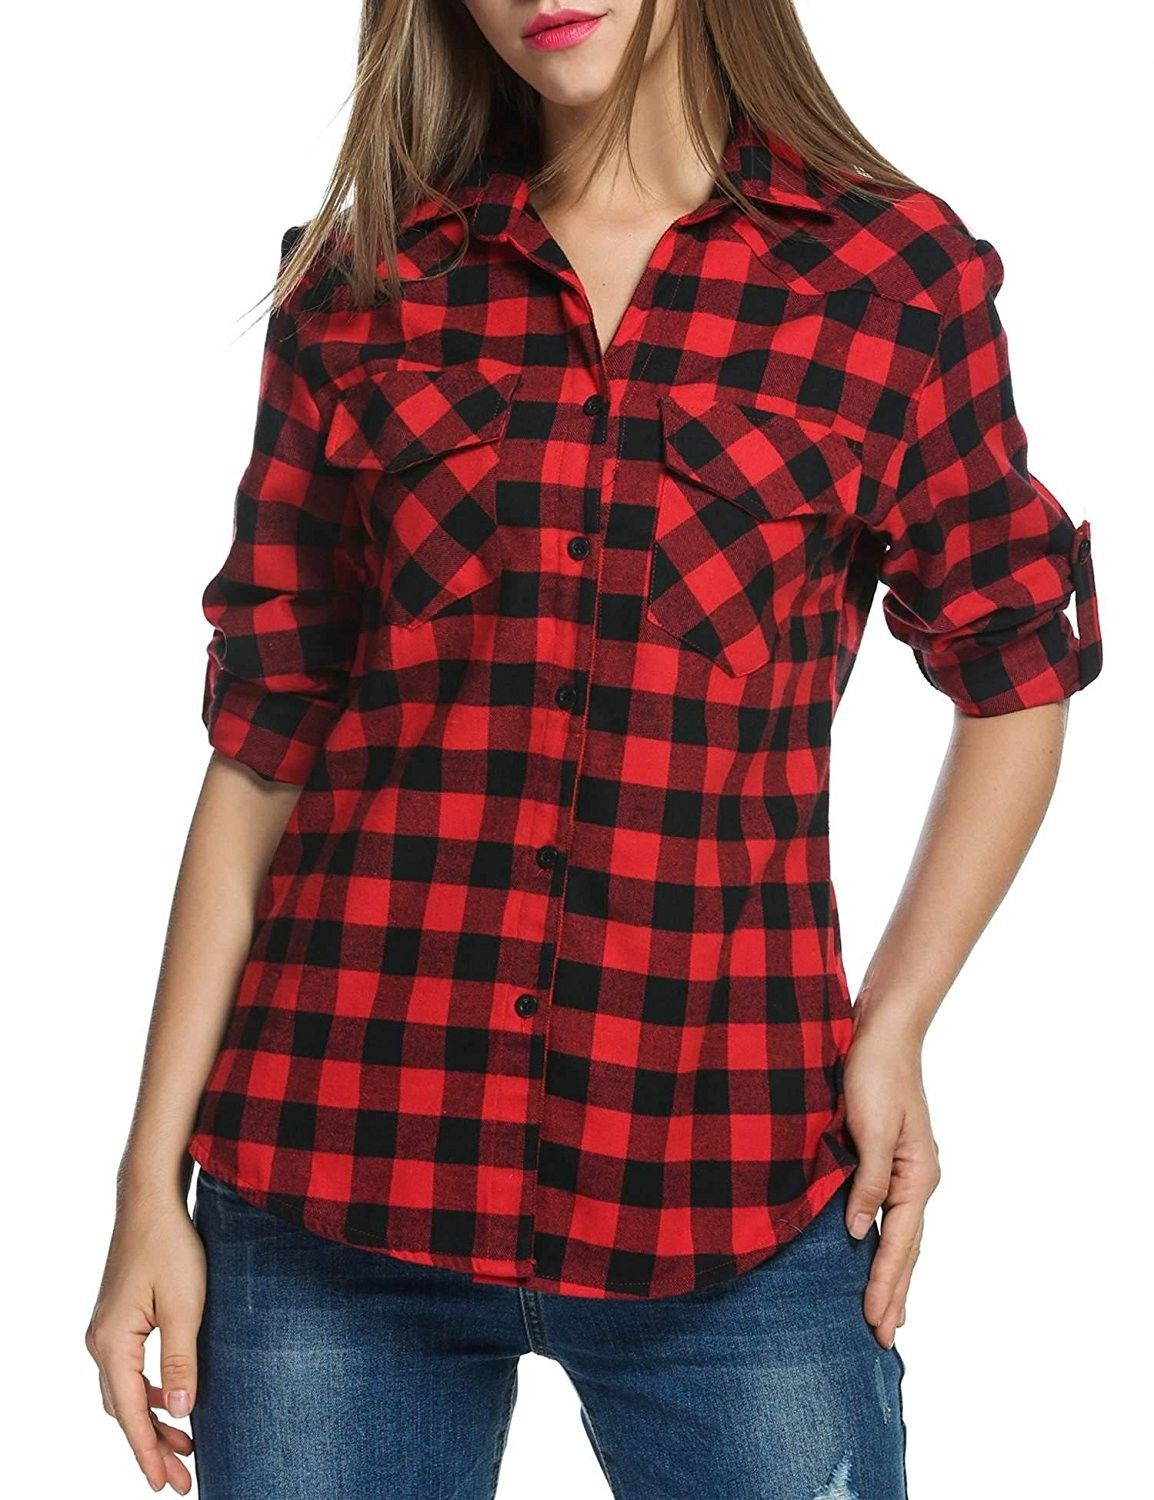 53d2d5b625bd7 Women s Roll Up Long Sleeve Plaids Buttoned Casual Boyfriend ...